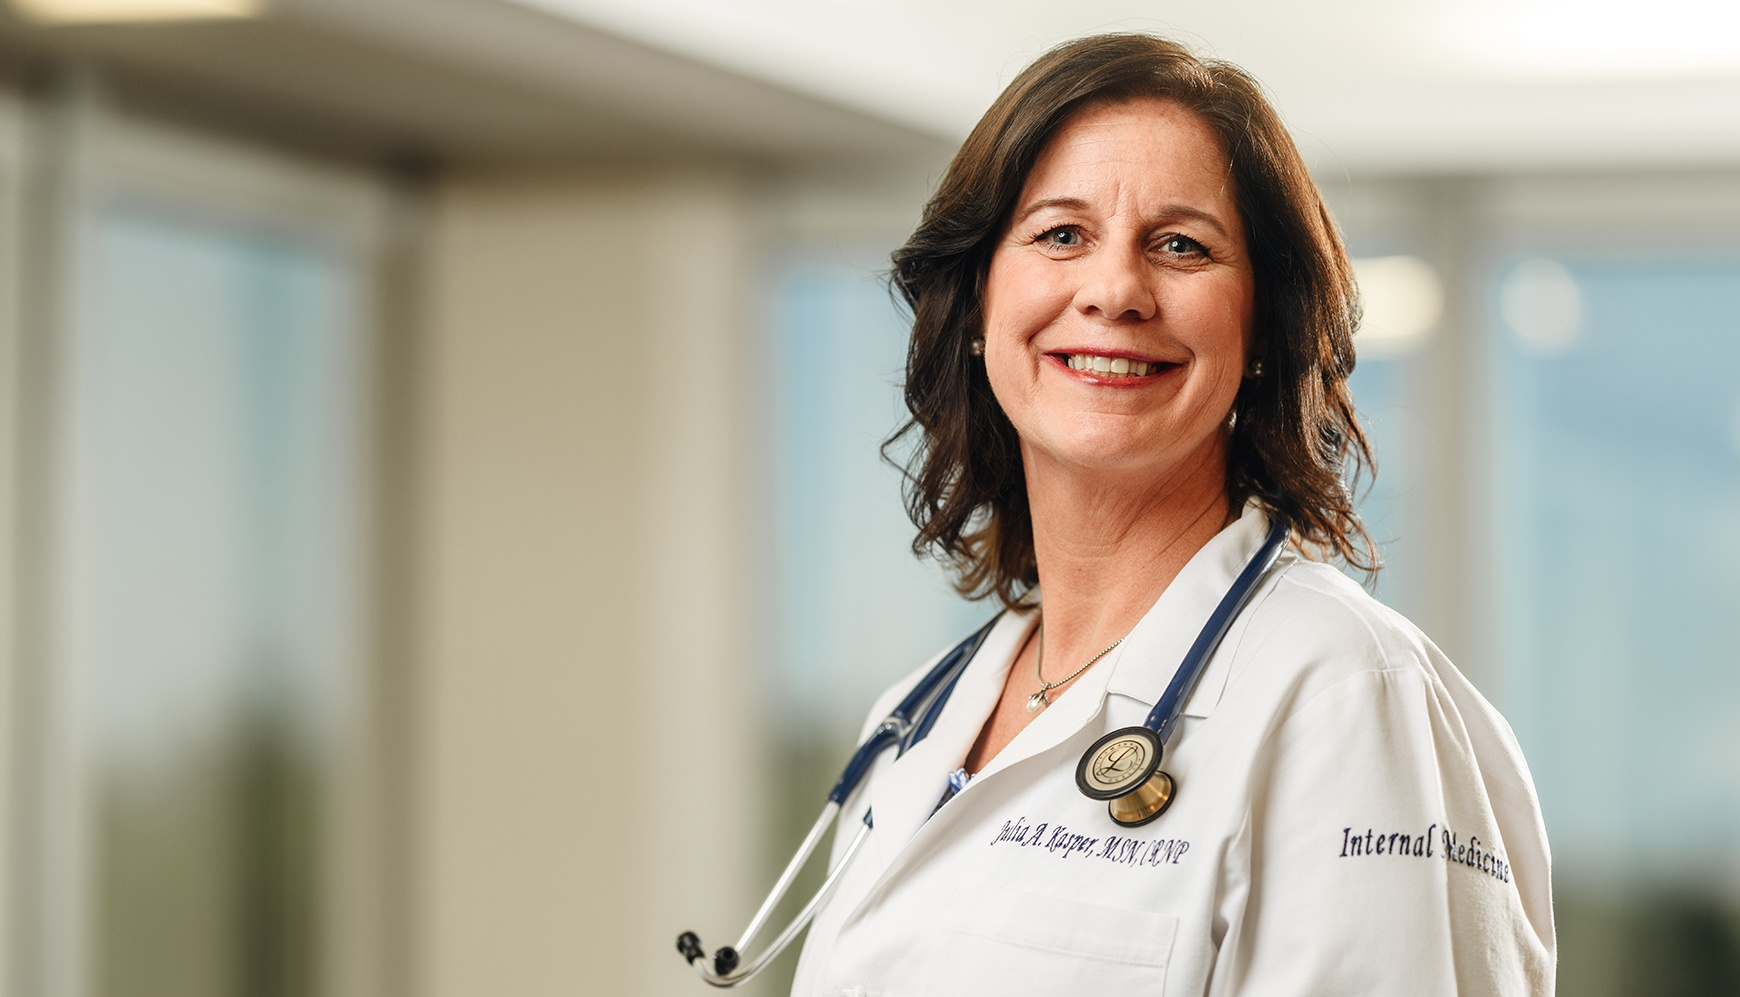 Professional Goals Meet Educational Passion: What You Need to Know About NU'sMS in Nursing